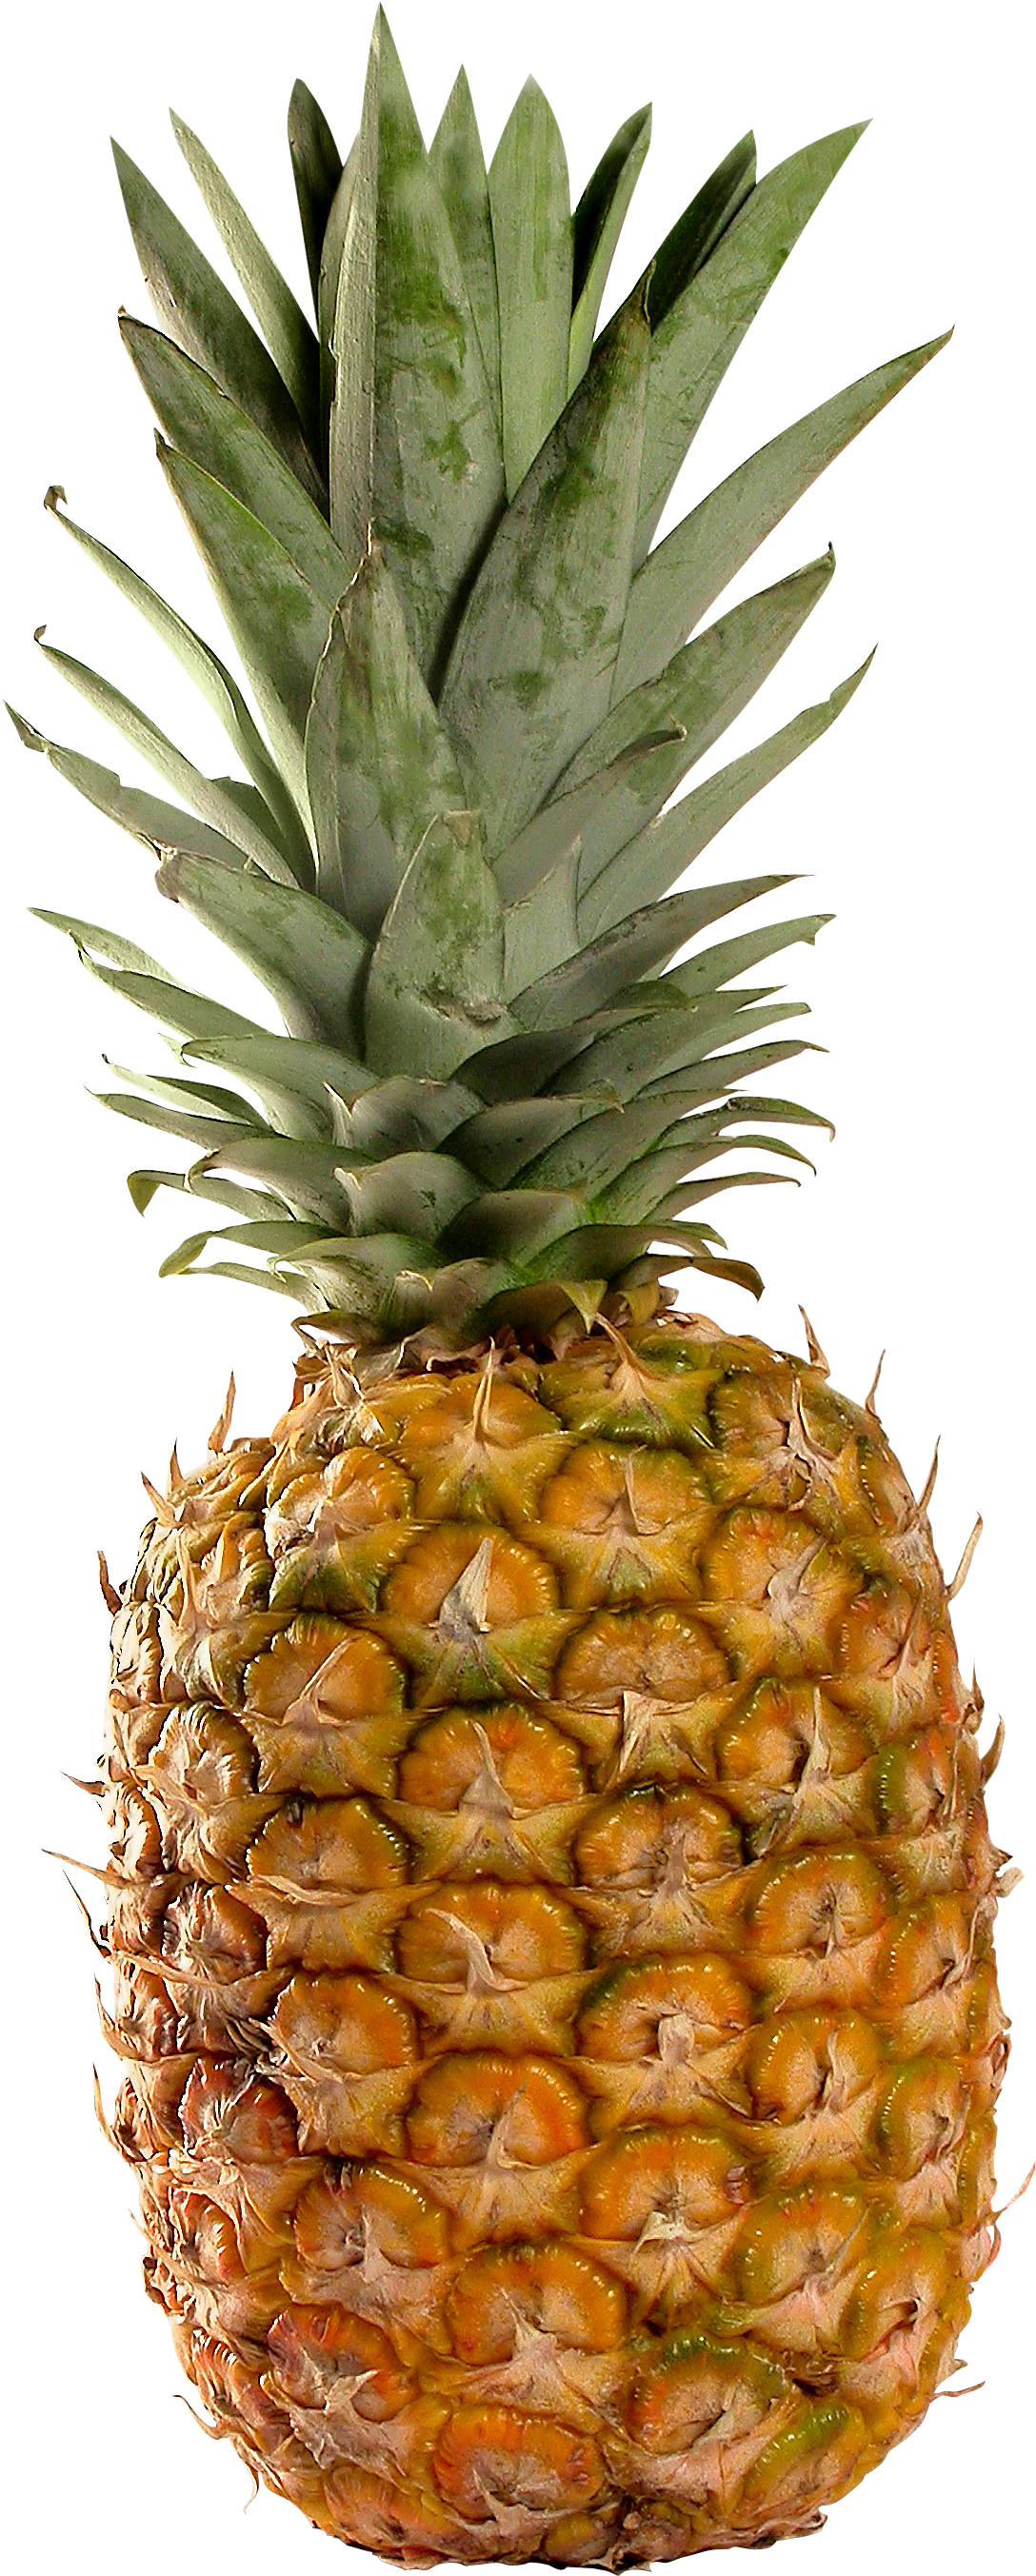 Pineapple PNG image, free download - Pineapple HD PNG